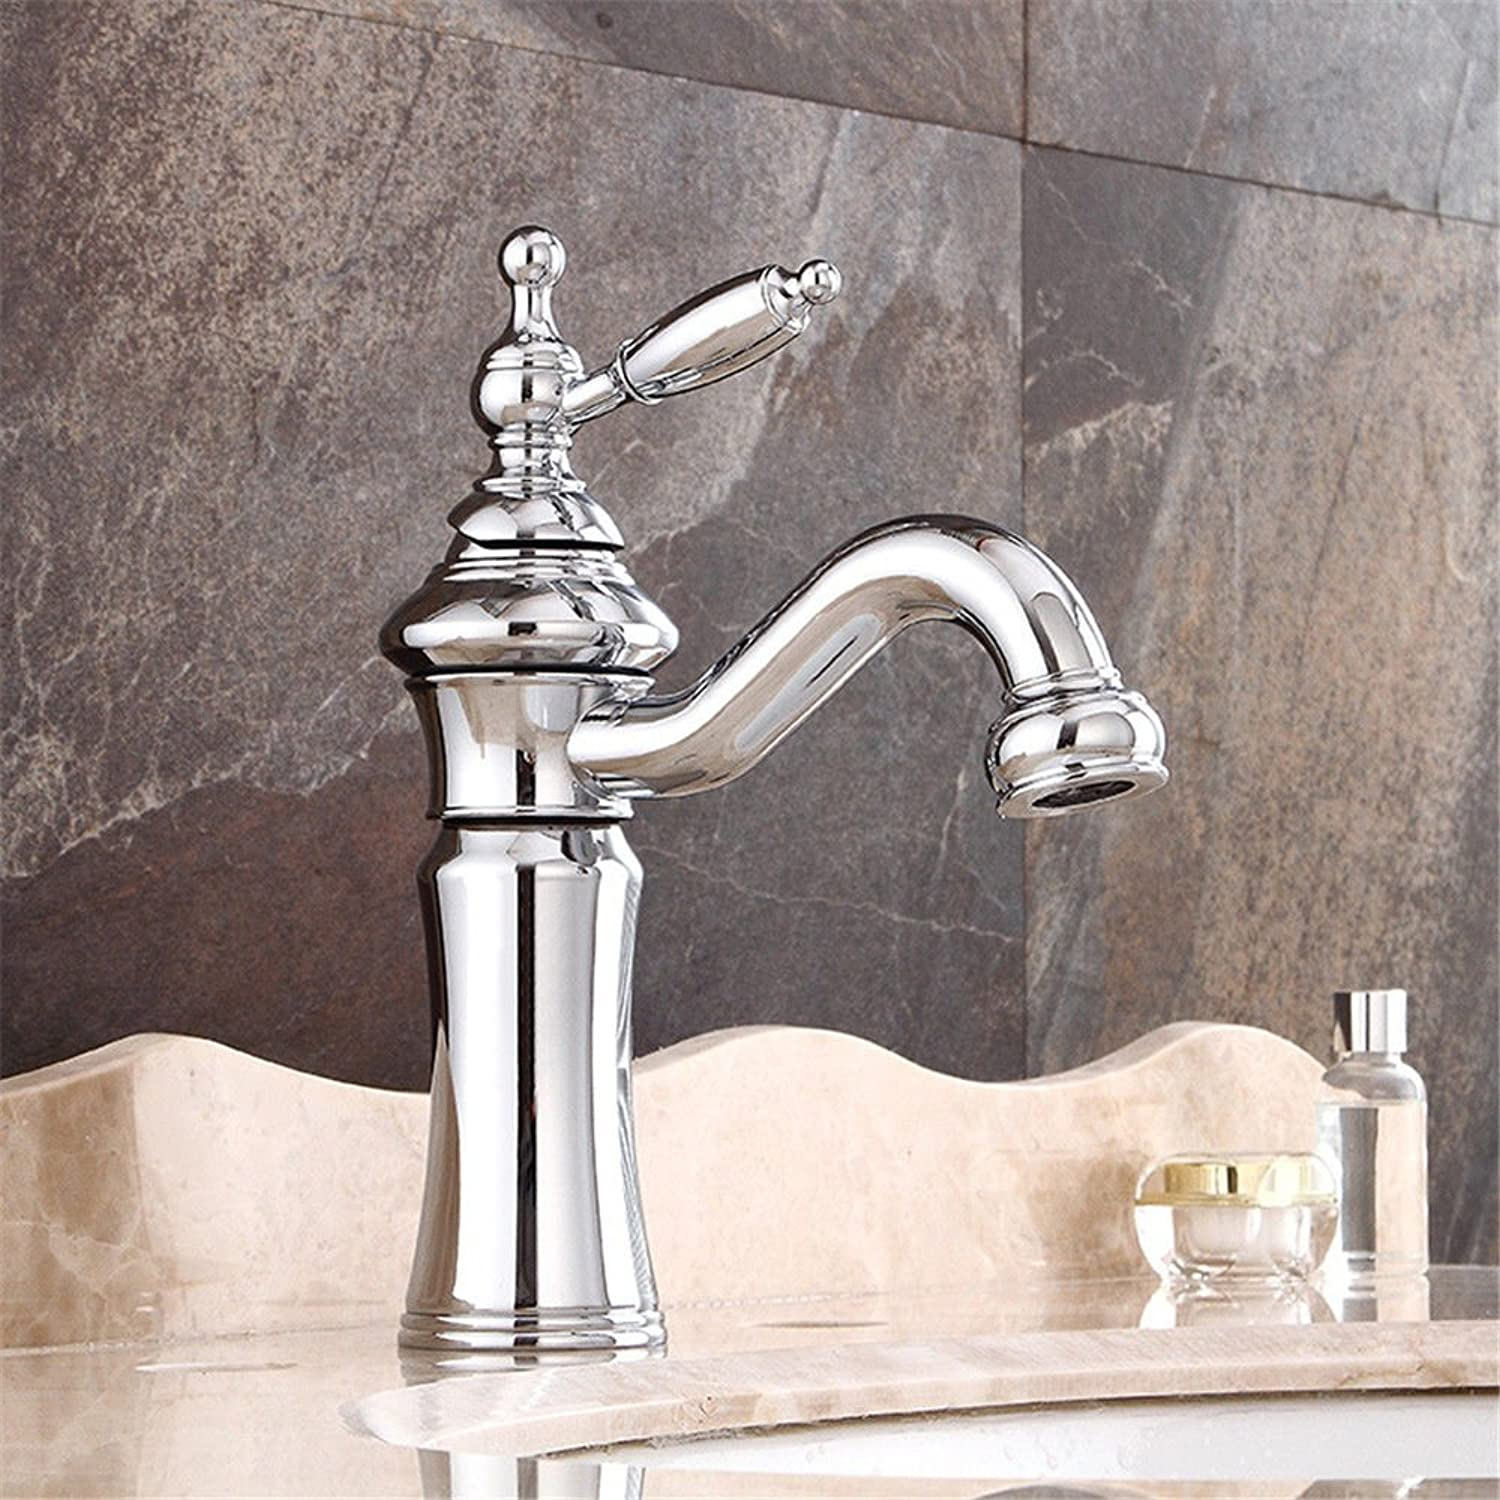 ETERNAL QUALITY Bathroom Sink Basin Tap Brass Mixer Tap Washroom Mixer Faucet The rise in water faucet antique hotel basin faucet full copper fittings Kitchen Sink Taps